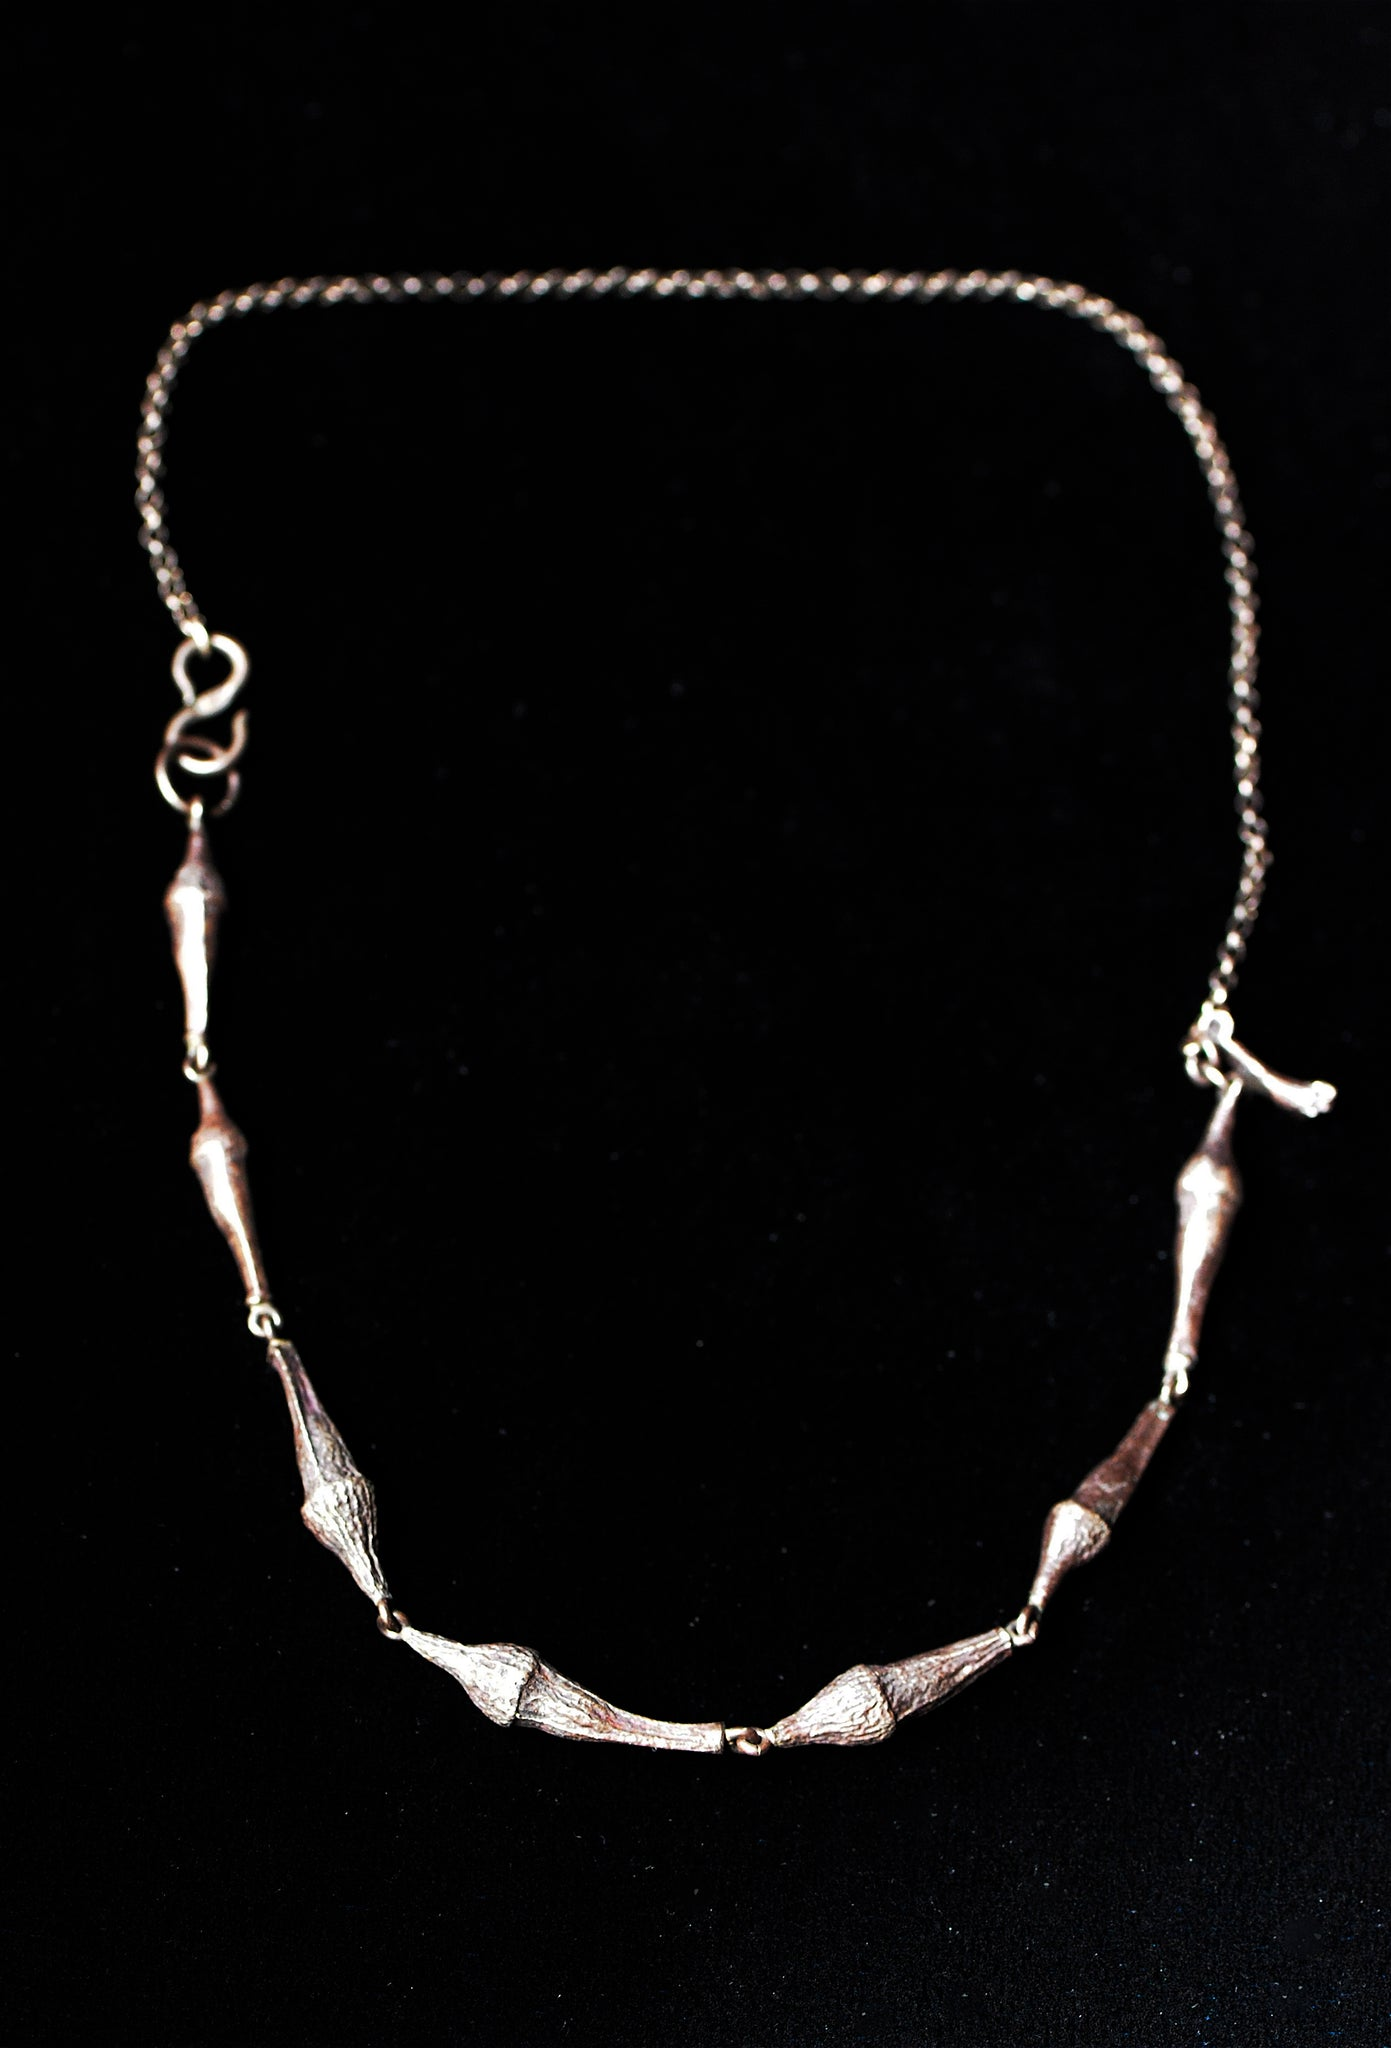 Dart Bracelet / Necklace